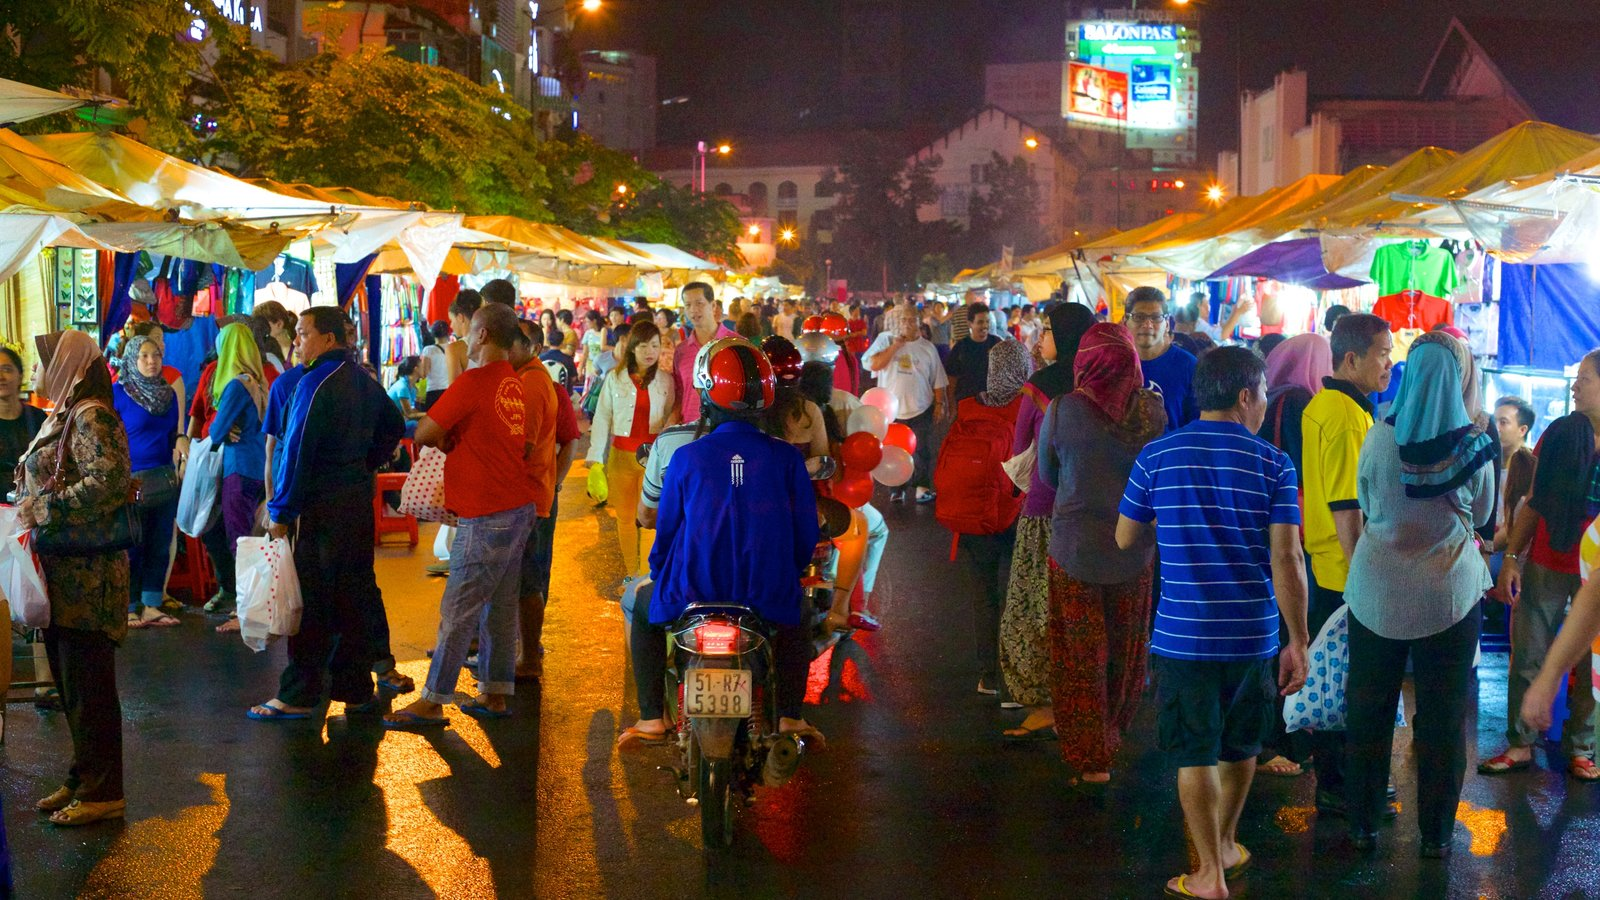 Ben Thanh Market which includes street scenes, night scenes and a city